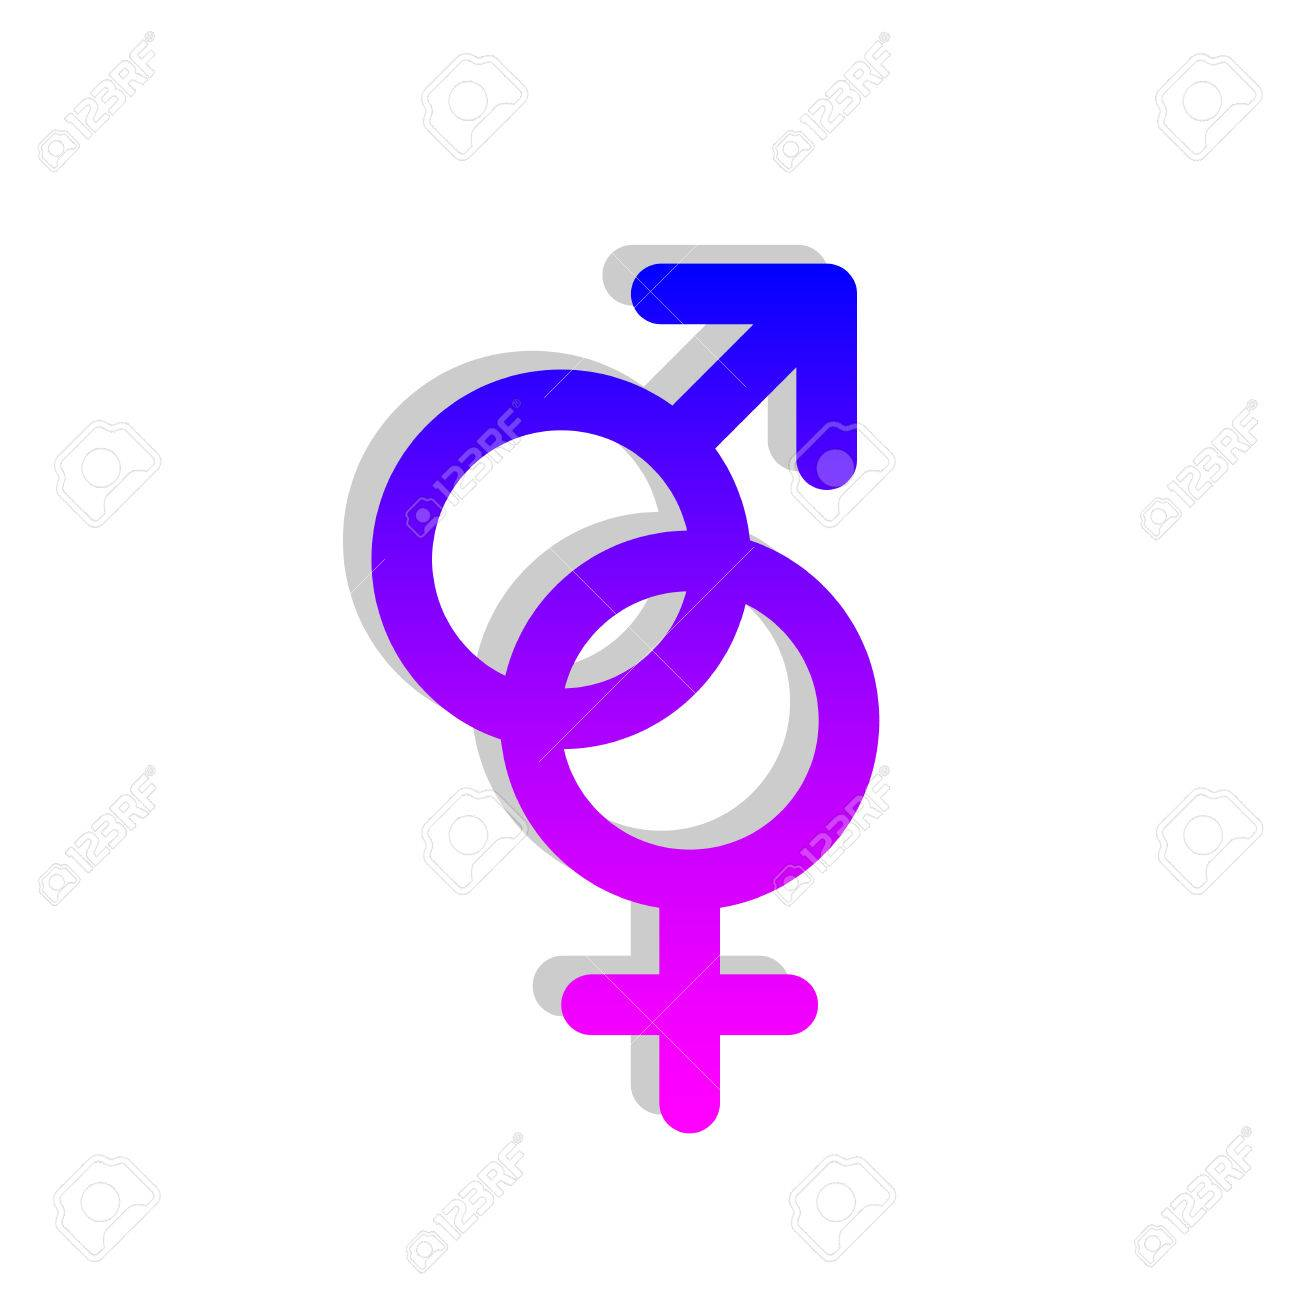 Male And Female Pink And Blue Gender Symbols Connected Together